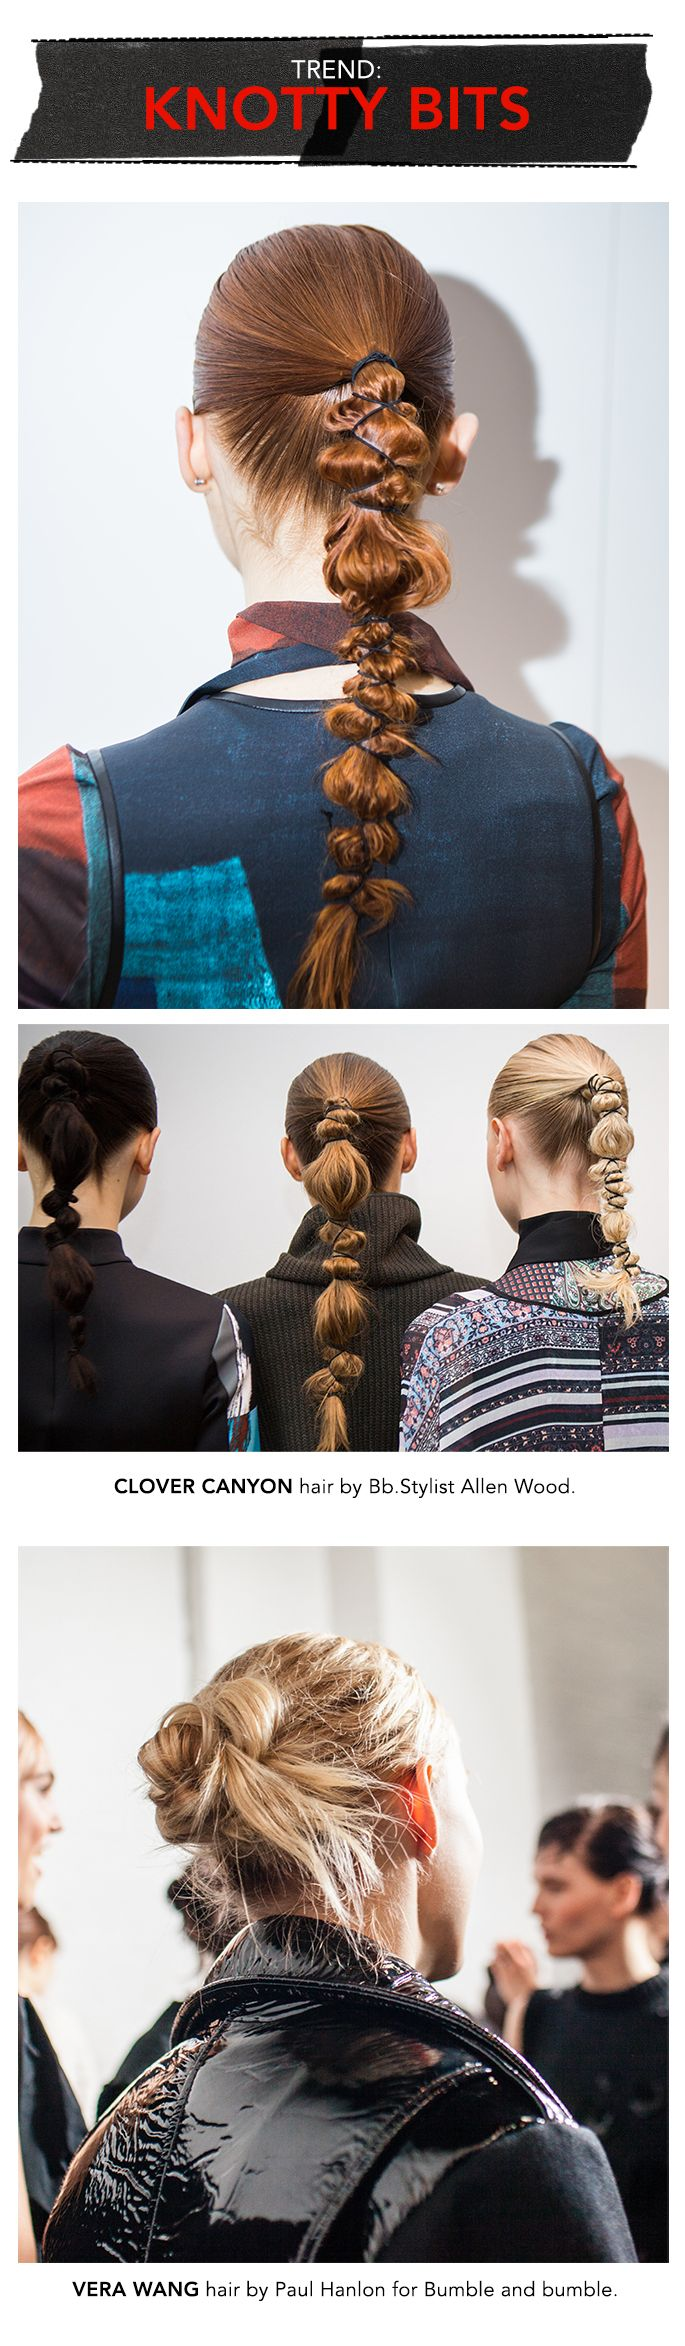 Up the edge on a ponytail by twisting and tying with string. Sort of playful, a bit bondage – as seen on the runway at NYFW.